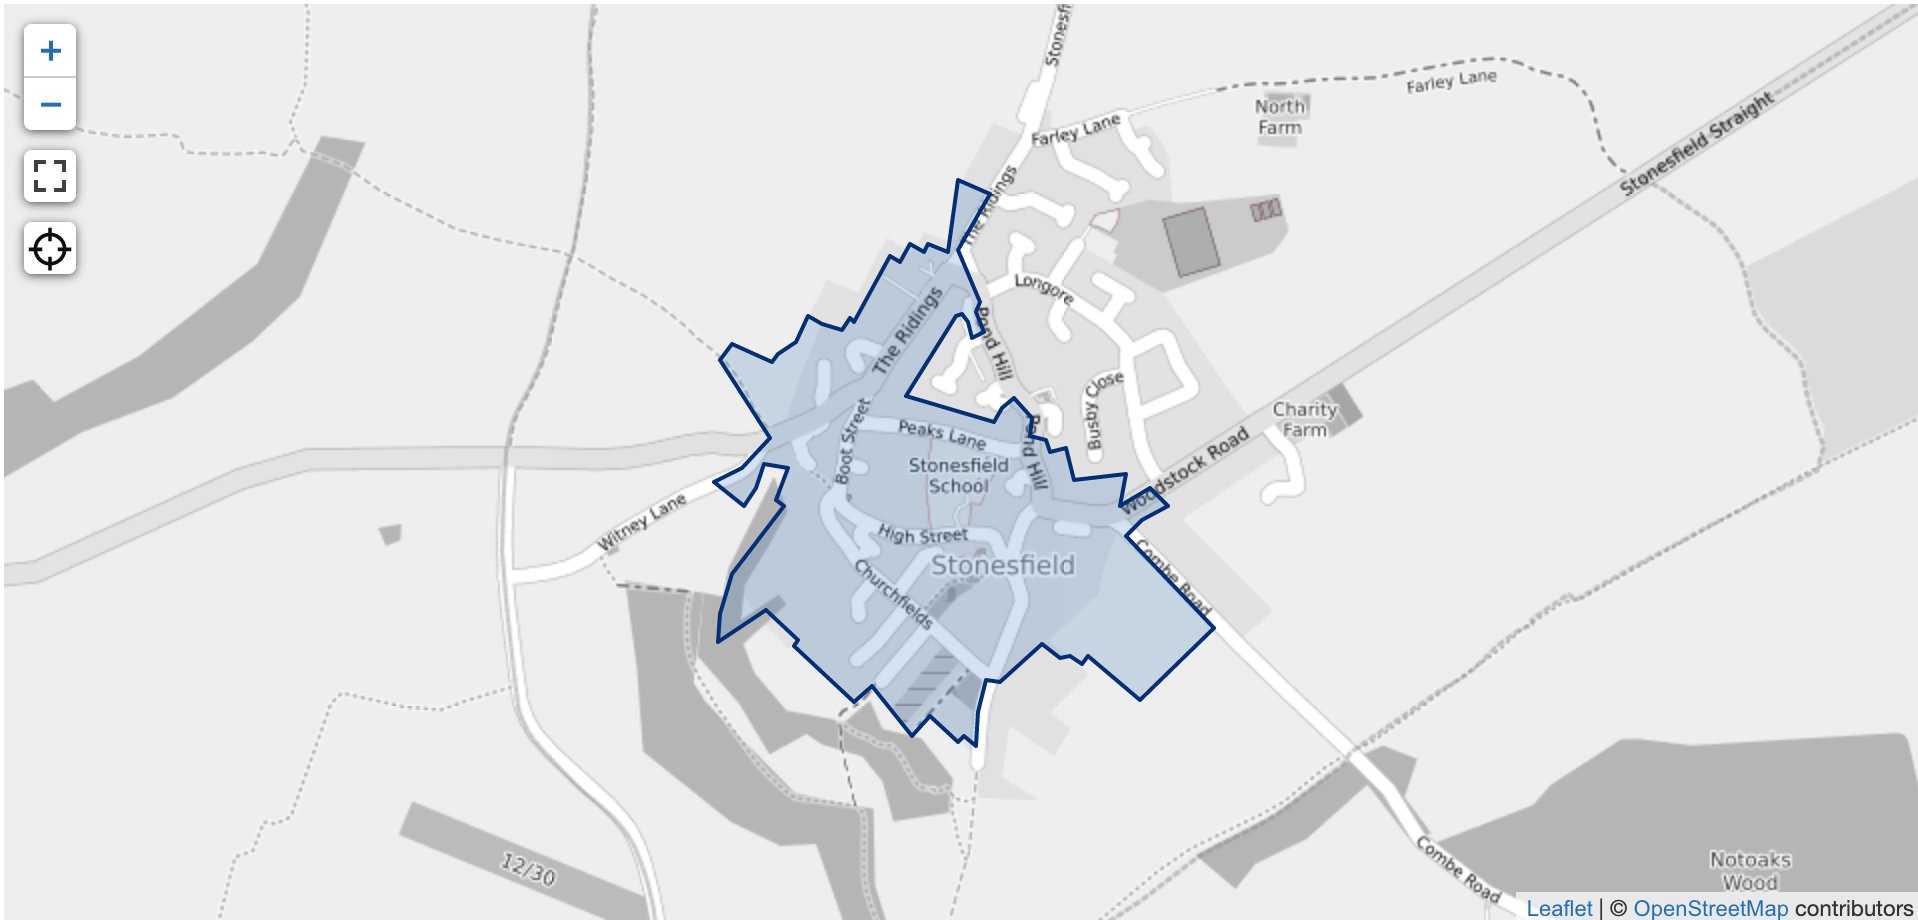 An example of shape data shown on a map - in this case it is the boundary of a conservation area